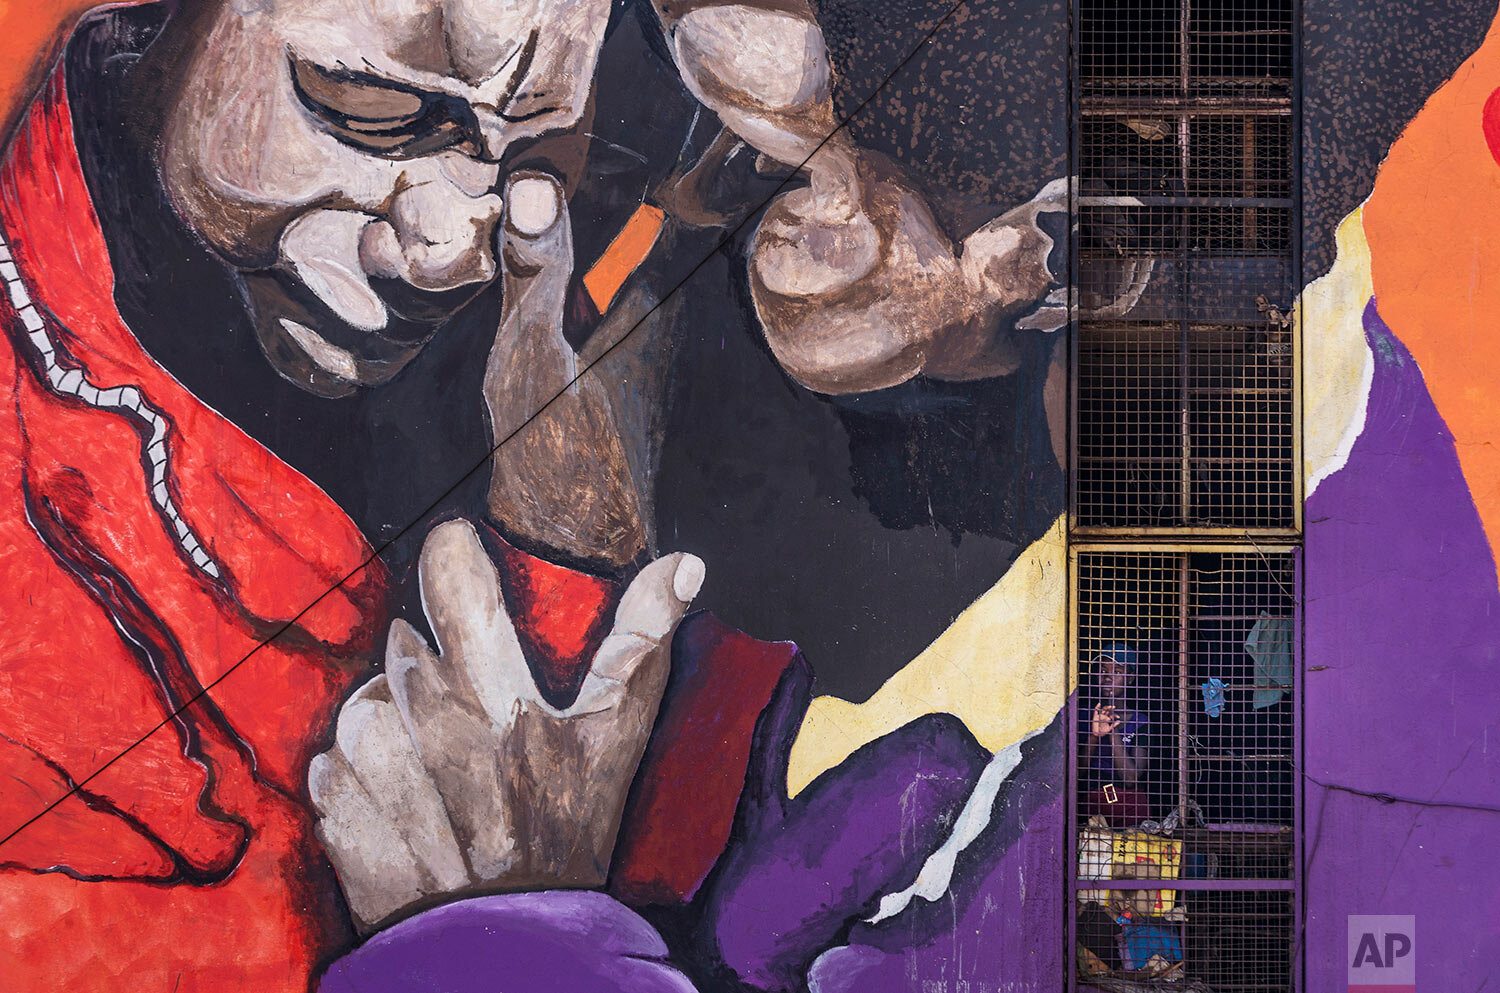 A resident looks out from the stairwell of her housing block, on which is painted an informational mural against sexual abuse, in the low income neighborhood of Mbare, known to have many supporters of former president Robert Mugabe's ZANU-PF party, in the capital Harare, Zimbabwe, Sept. 9, 2019. (AP Photo/Ben Curtis)